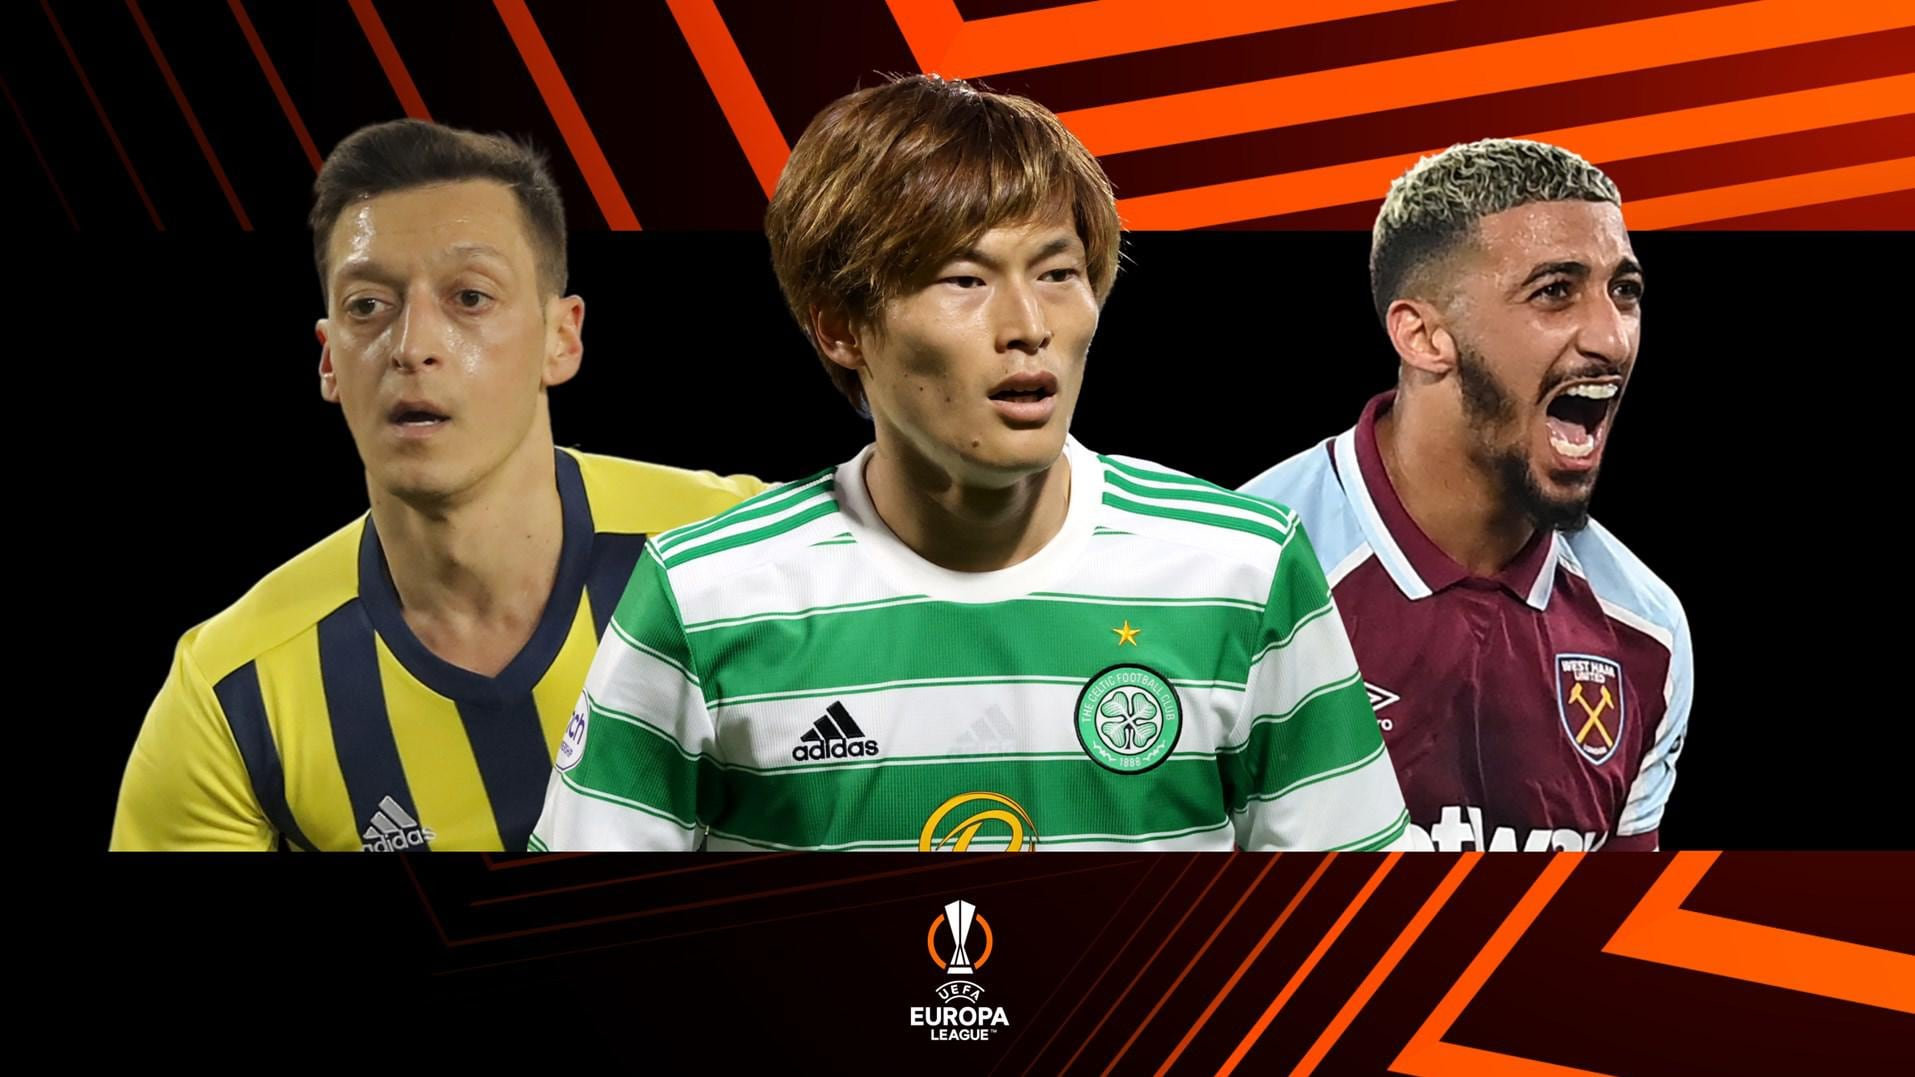 UEFA Europa League: What to look out for on Matchday 1 - UEFA.com